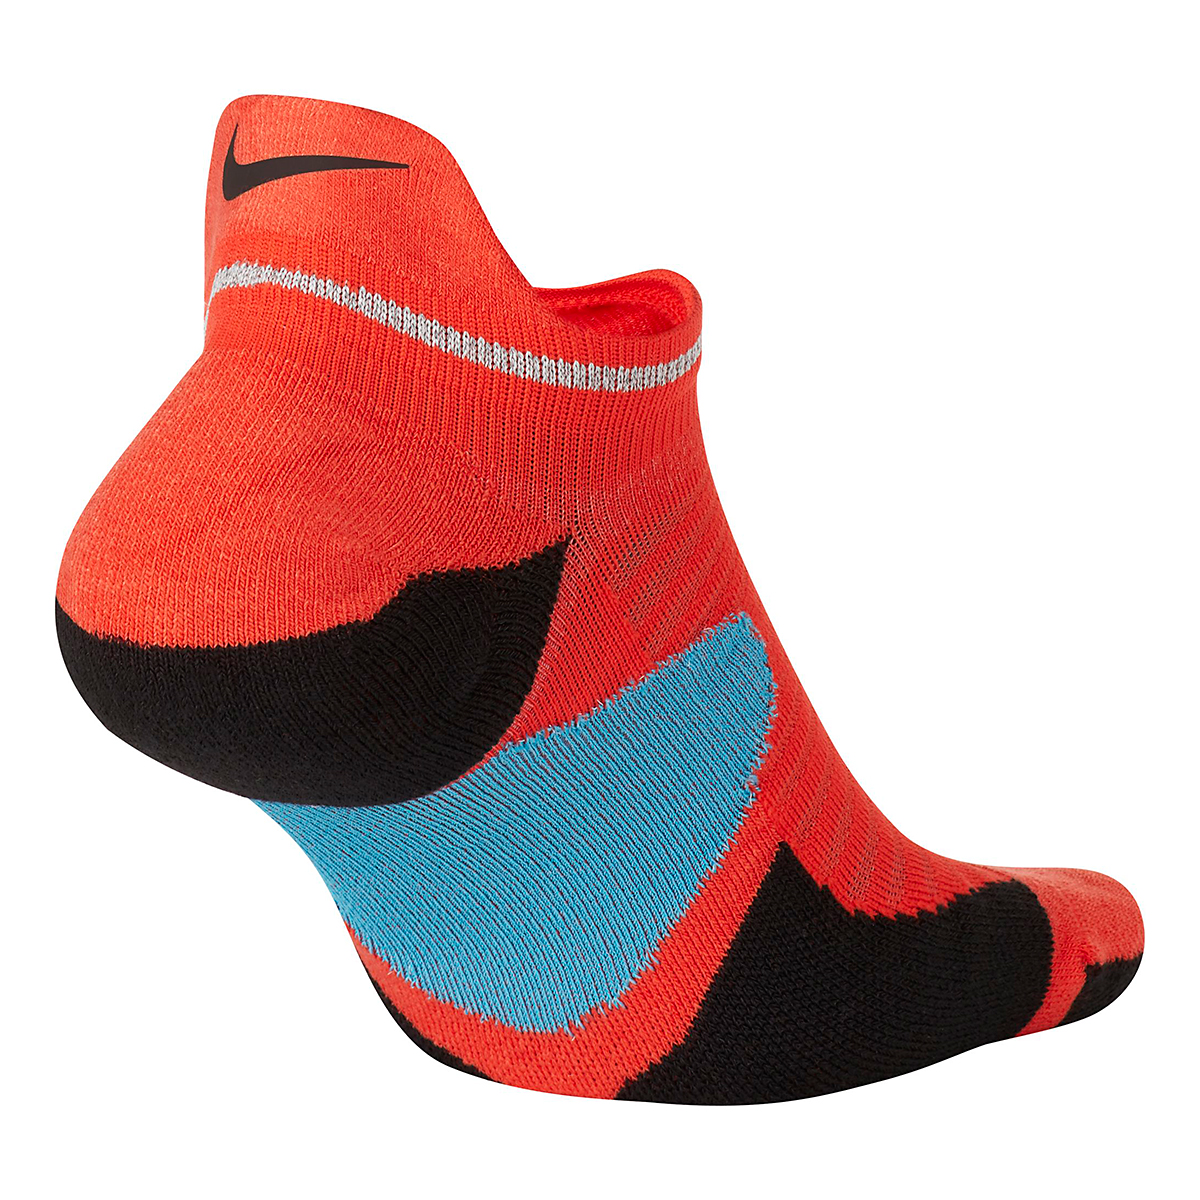 Nike Spark Cushion No Show Sock - Color: Chile Red/Reflective - Size: 4/5.5, Chile Red/Reflective, large, image 2